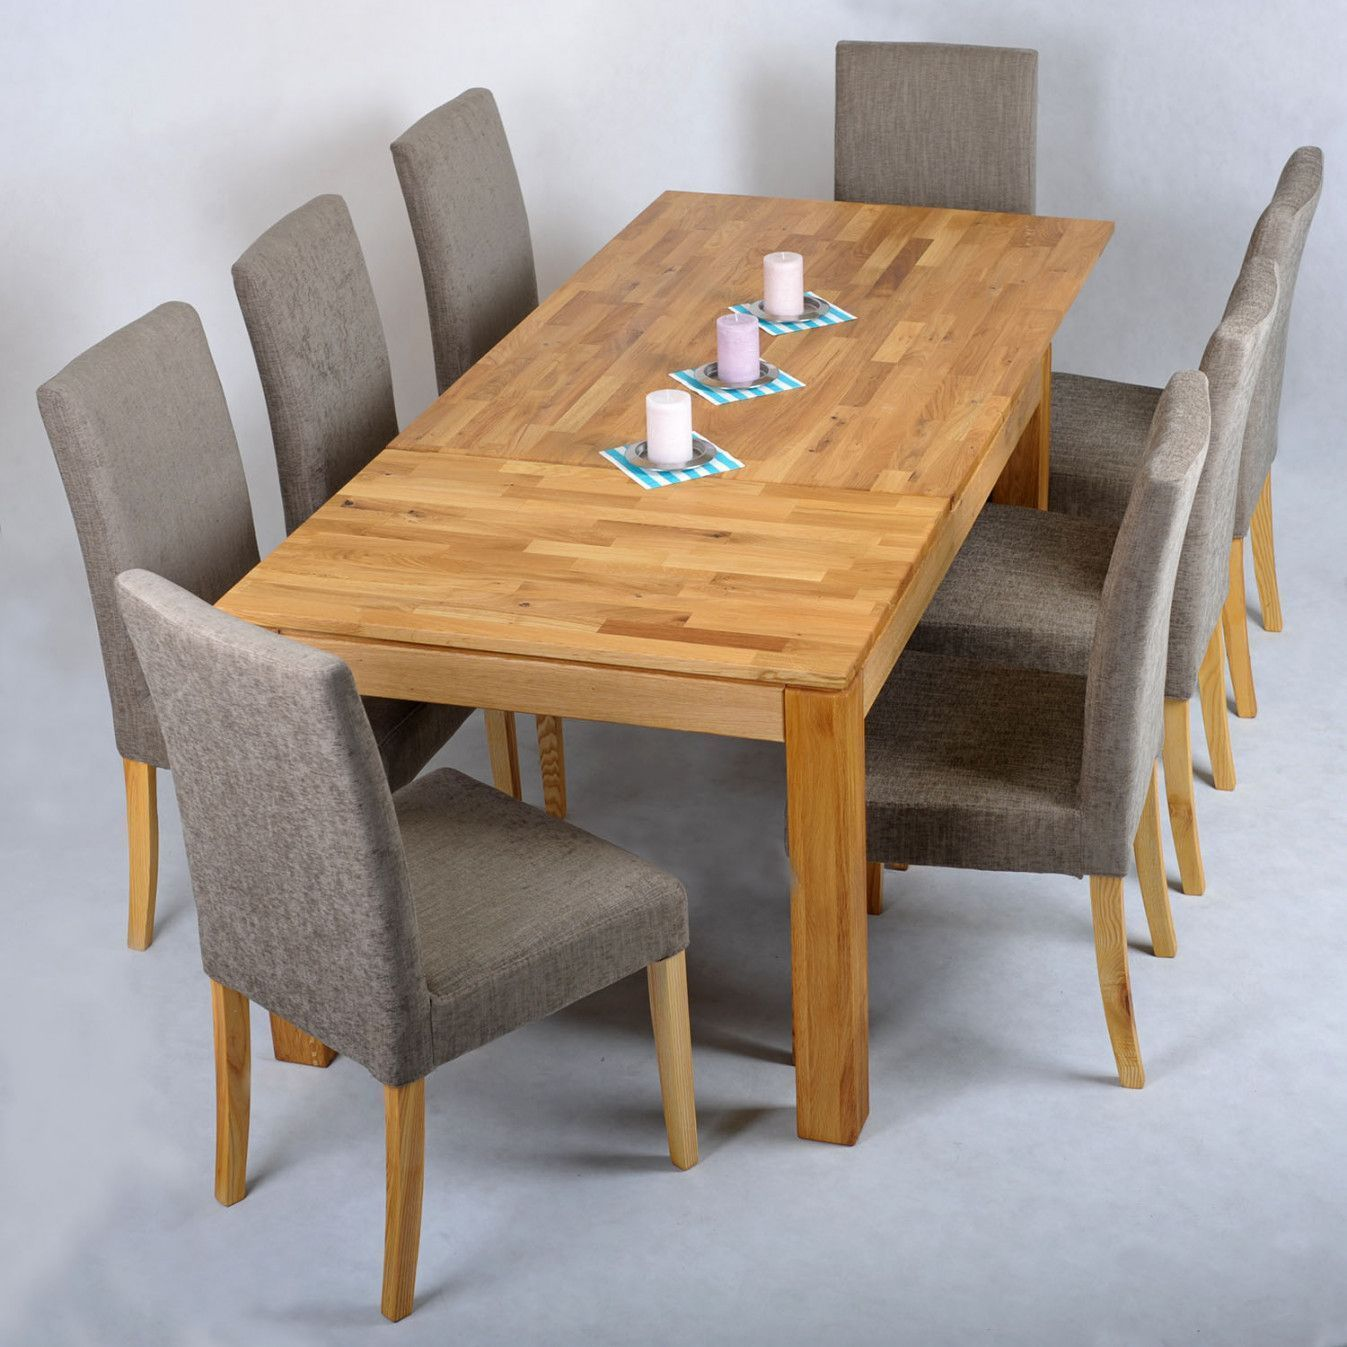 99 Oak Dining Table And Chairs For Sale Modern Classic Furniture Check More At Http Www E Dining Table Chairs Solid Oak Dining Table Oak Dining Room Table